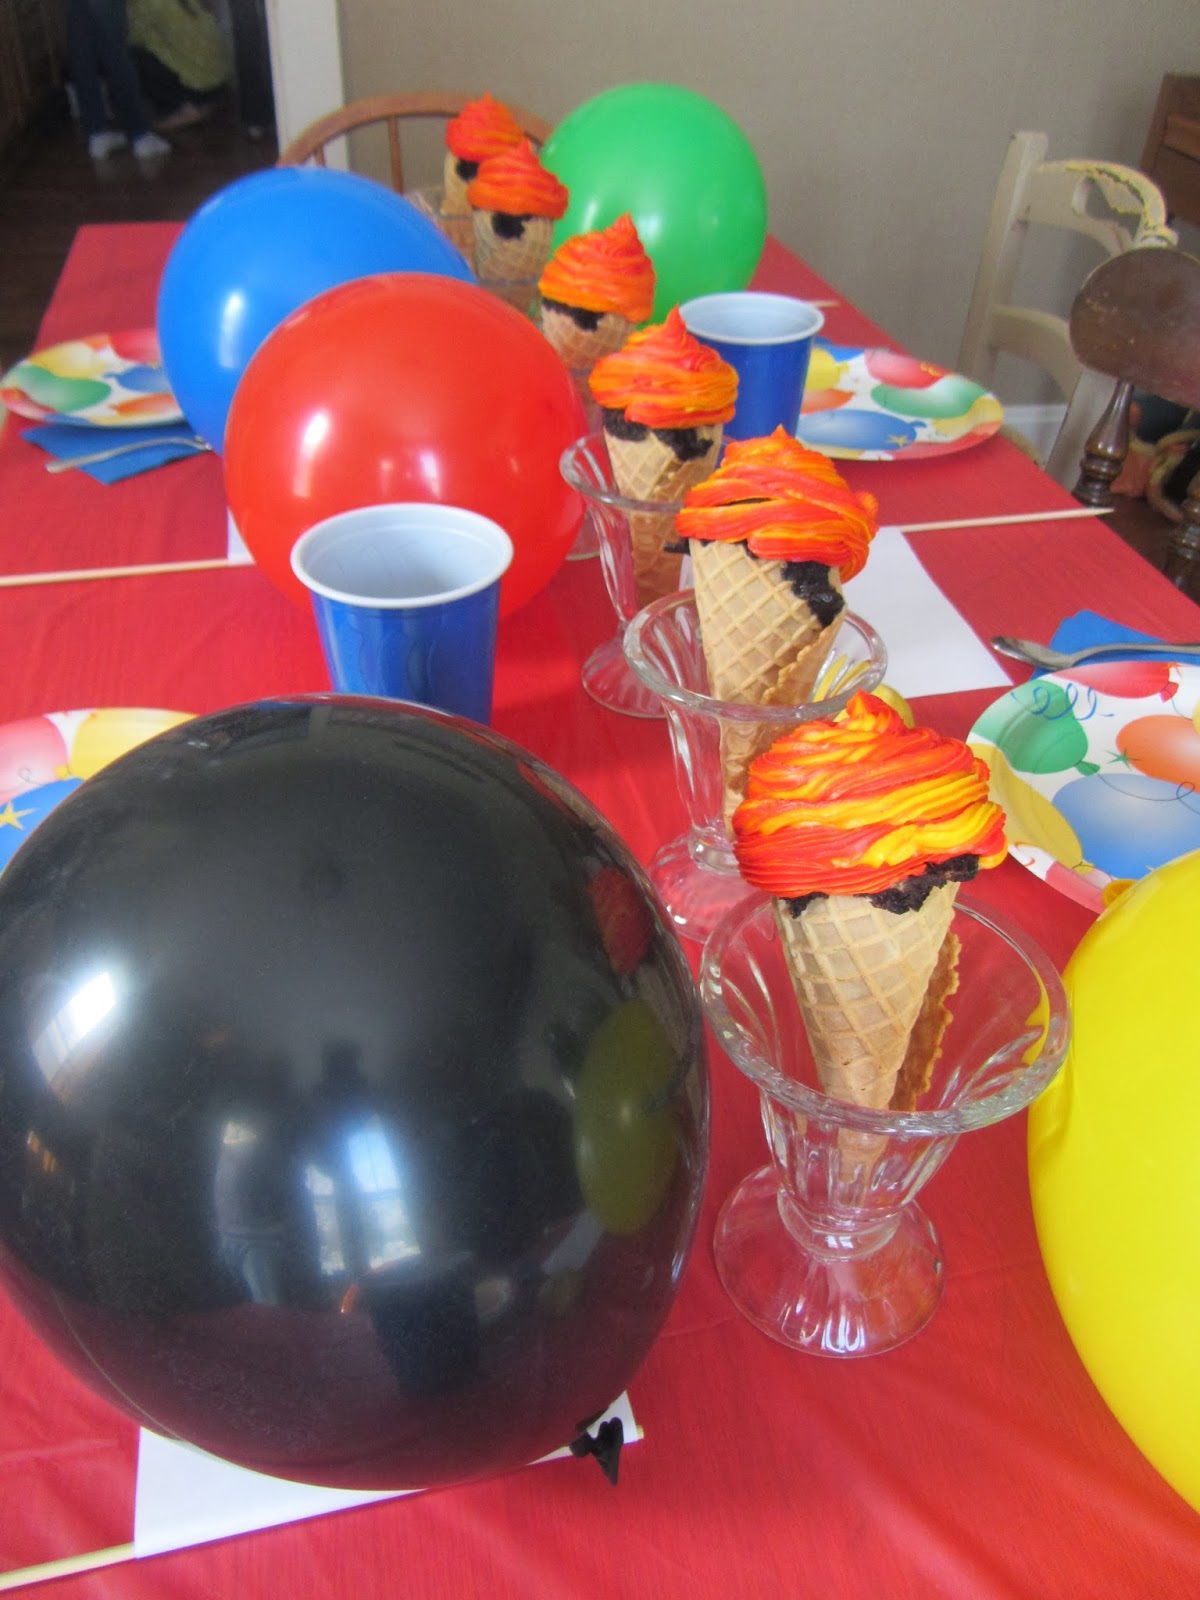 Olympic Party for Kids-The Unlikely Homeschool